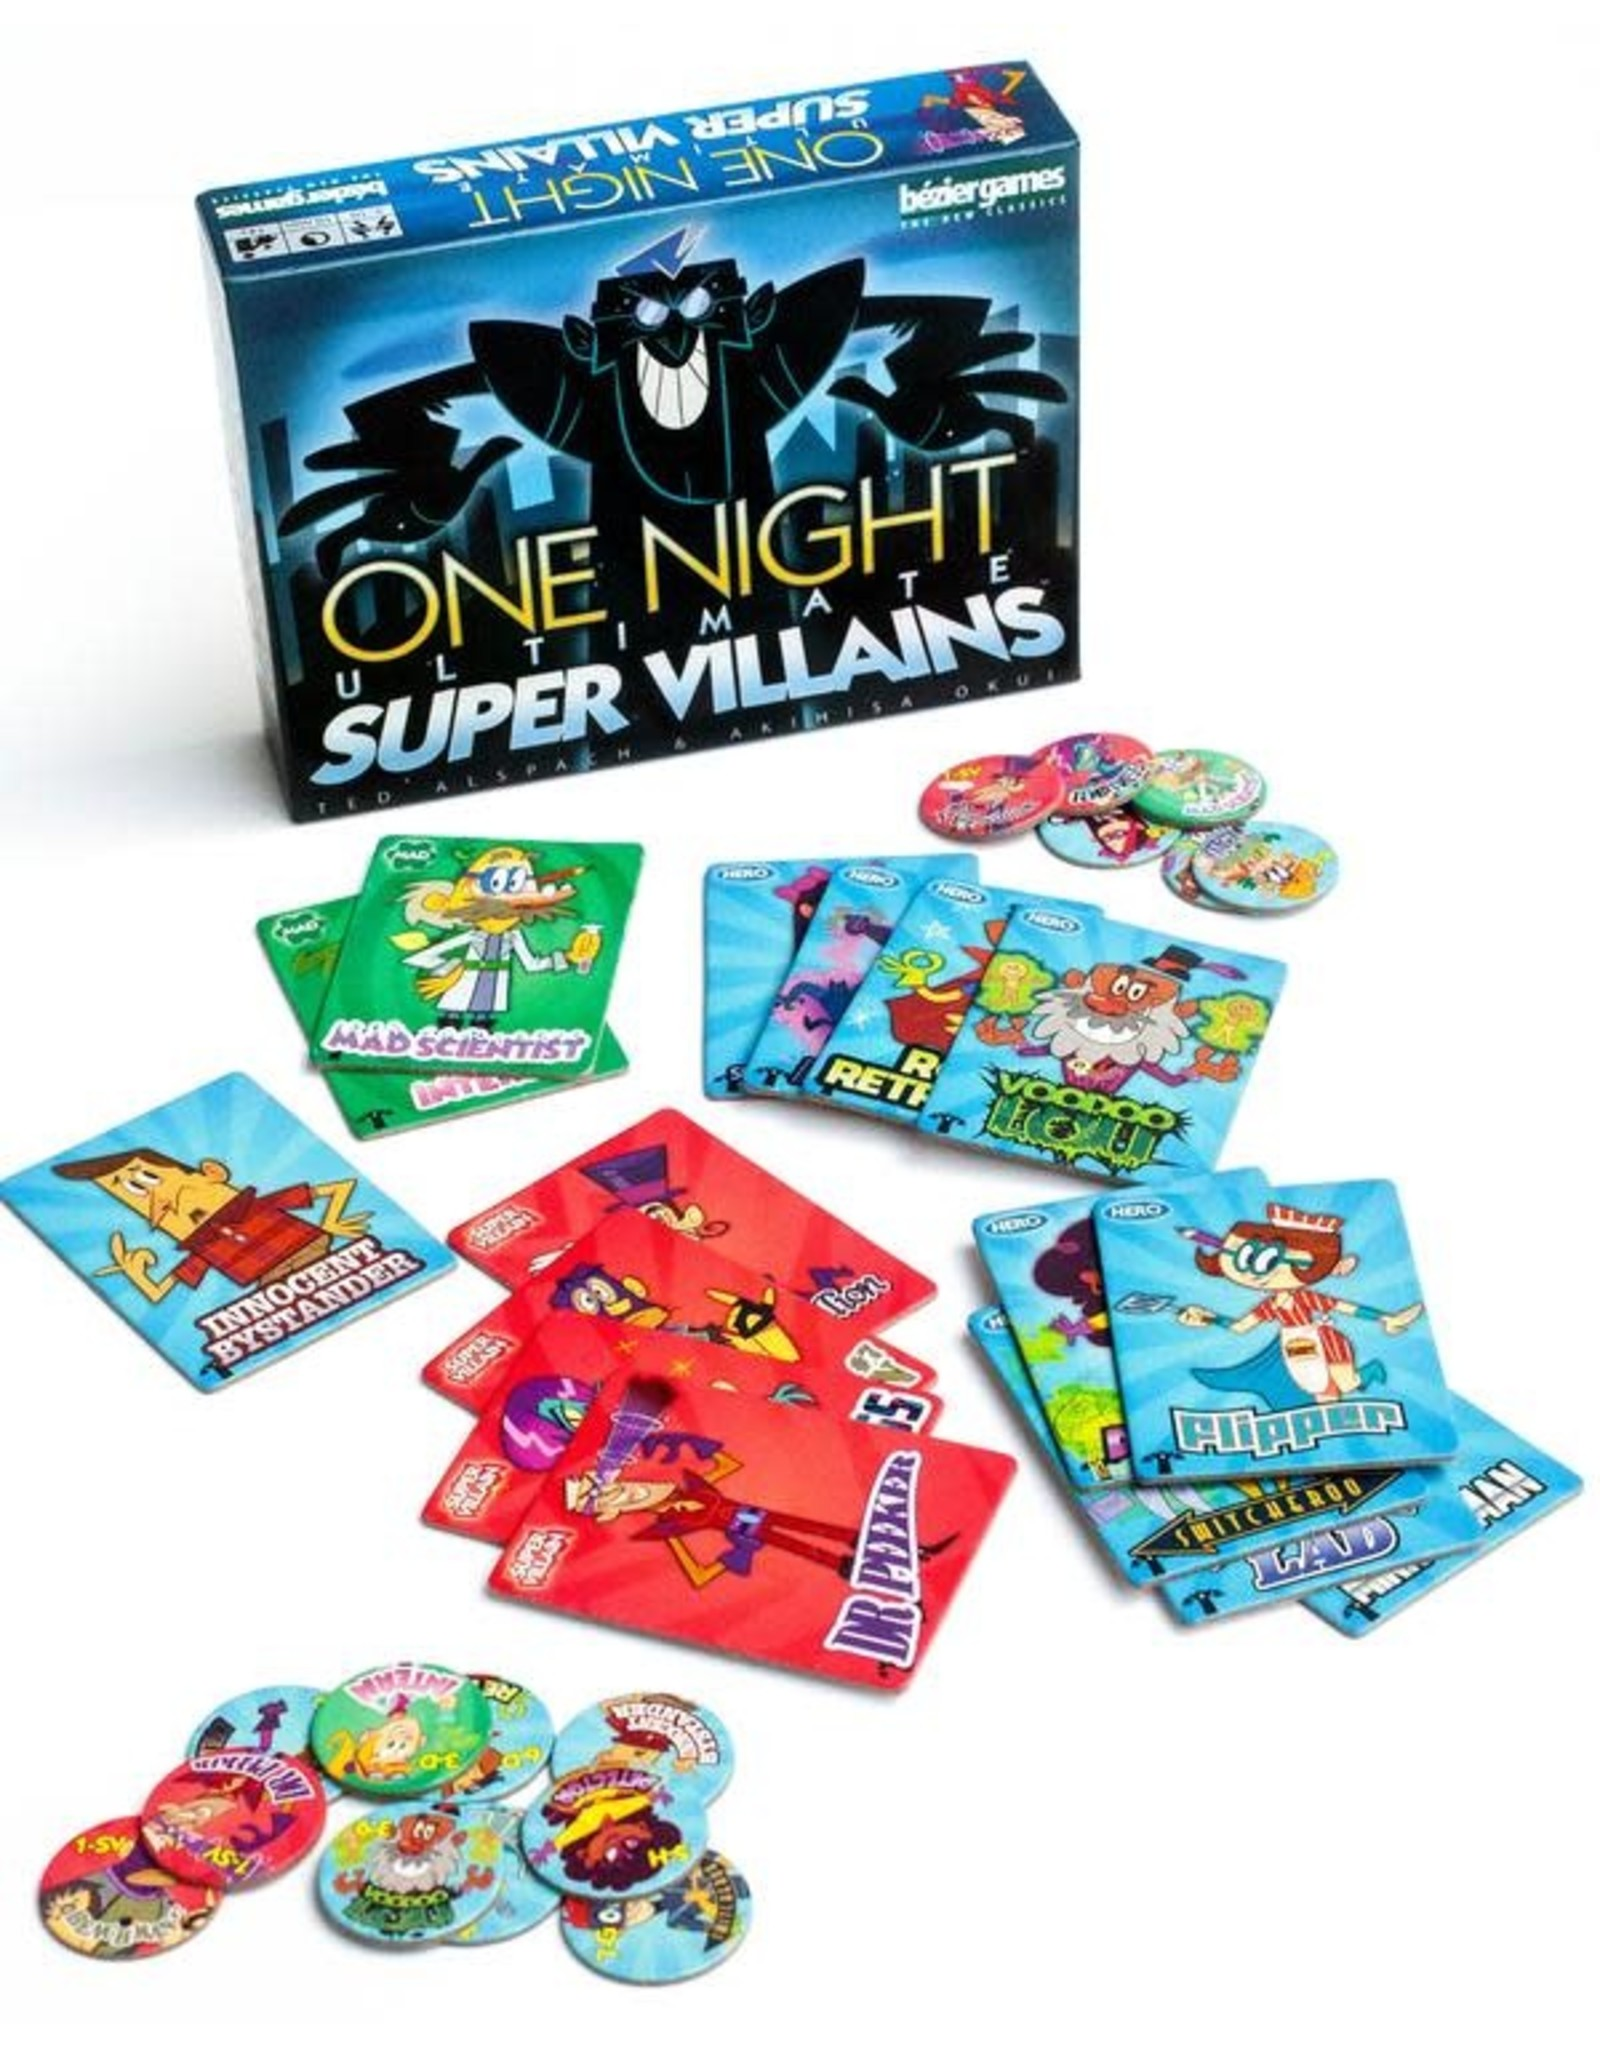 Bezier Games One Night Ultimate Super Villains